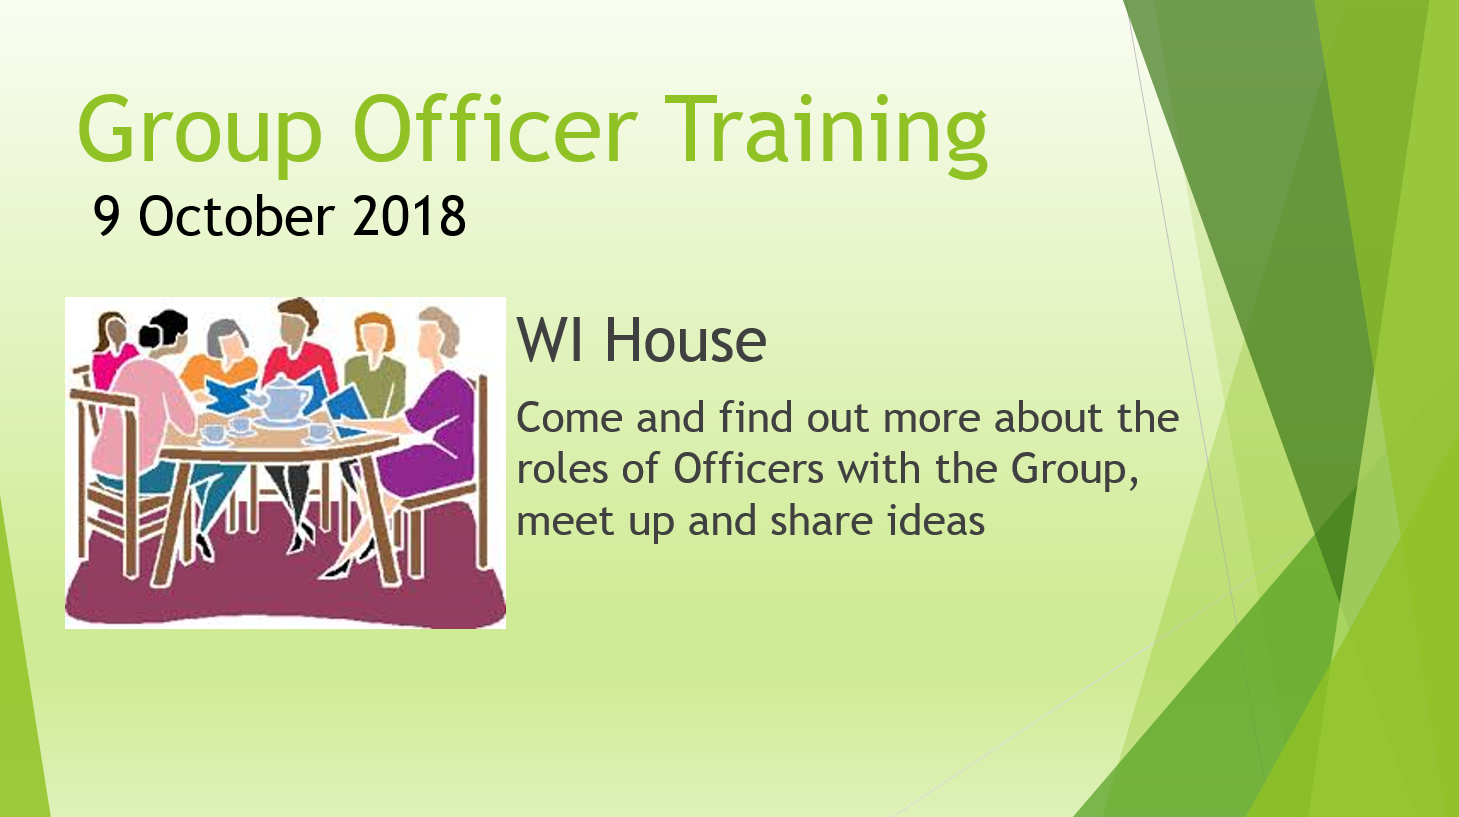 Group Officer Training